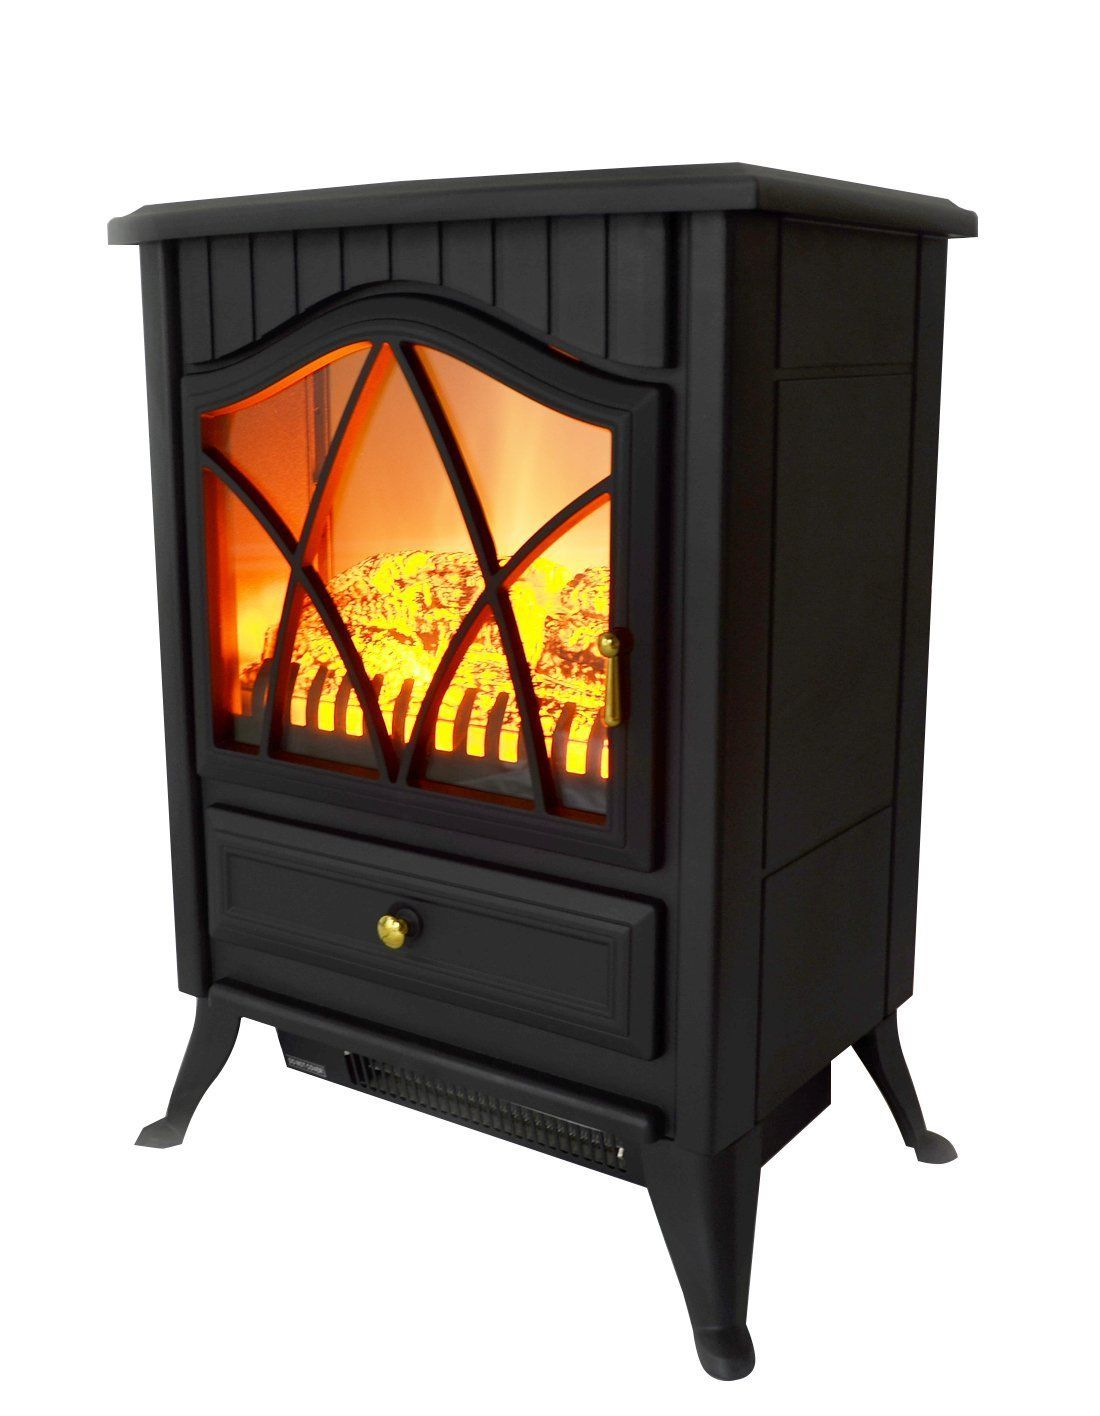 Electric Stove Heater Freestand Indoor Fireplace 1500 Watt 5200